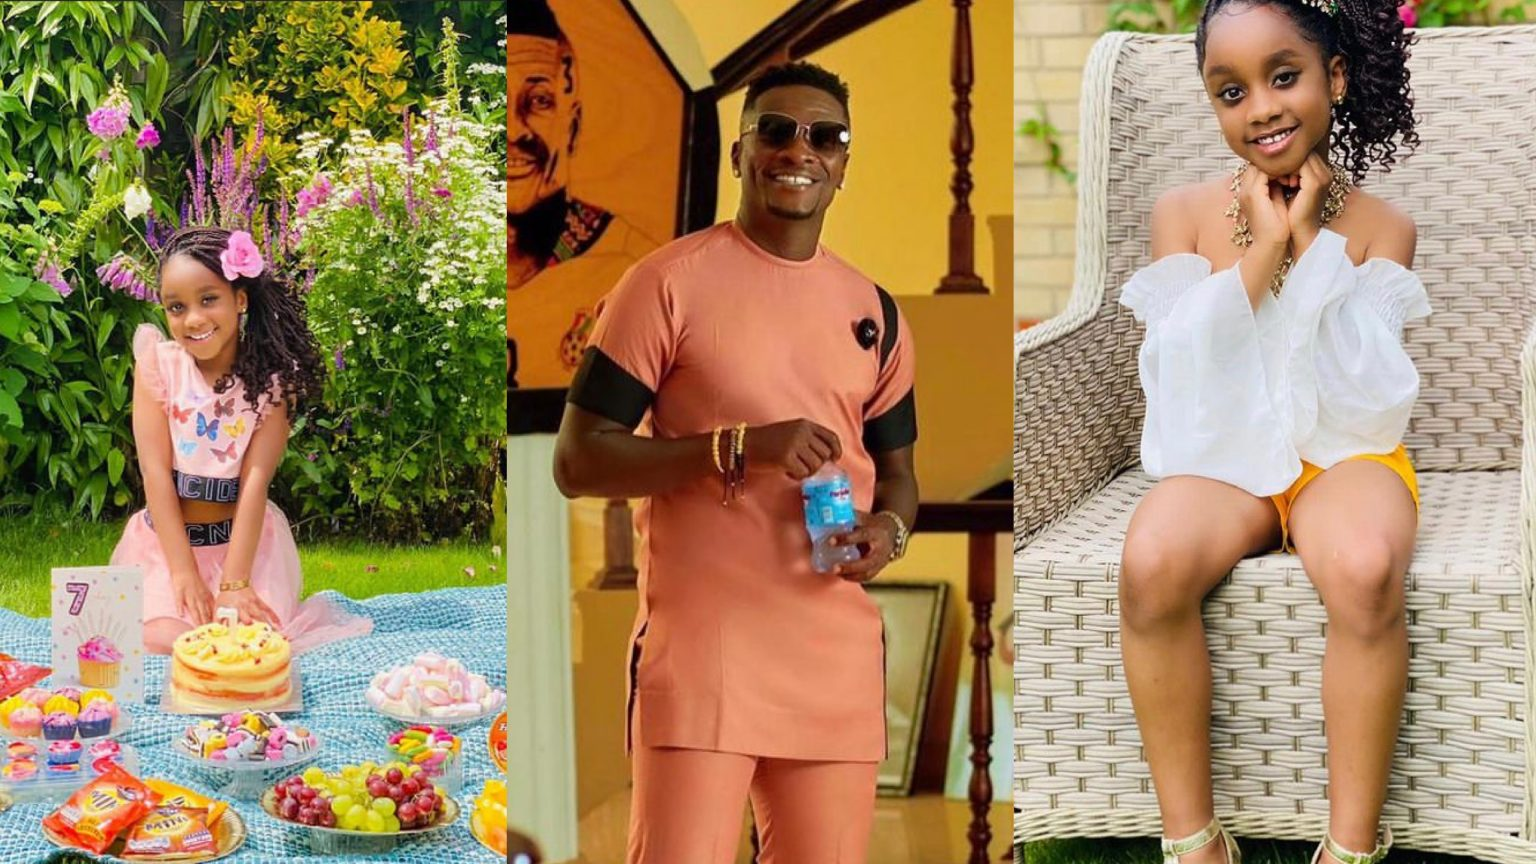 Asamoah Gyan's Daughter Looking More Stunning As She Celebrates Her Seventh Birthday